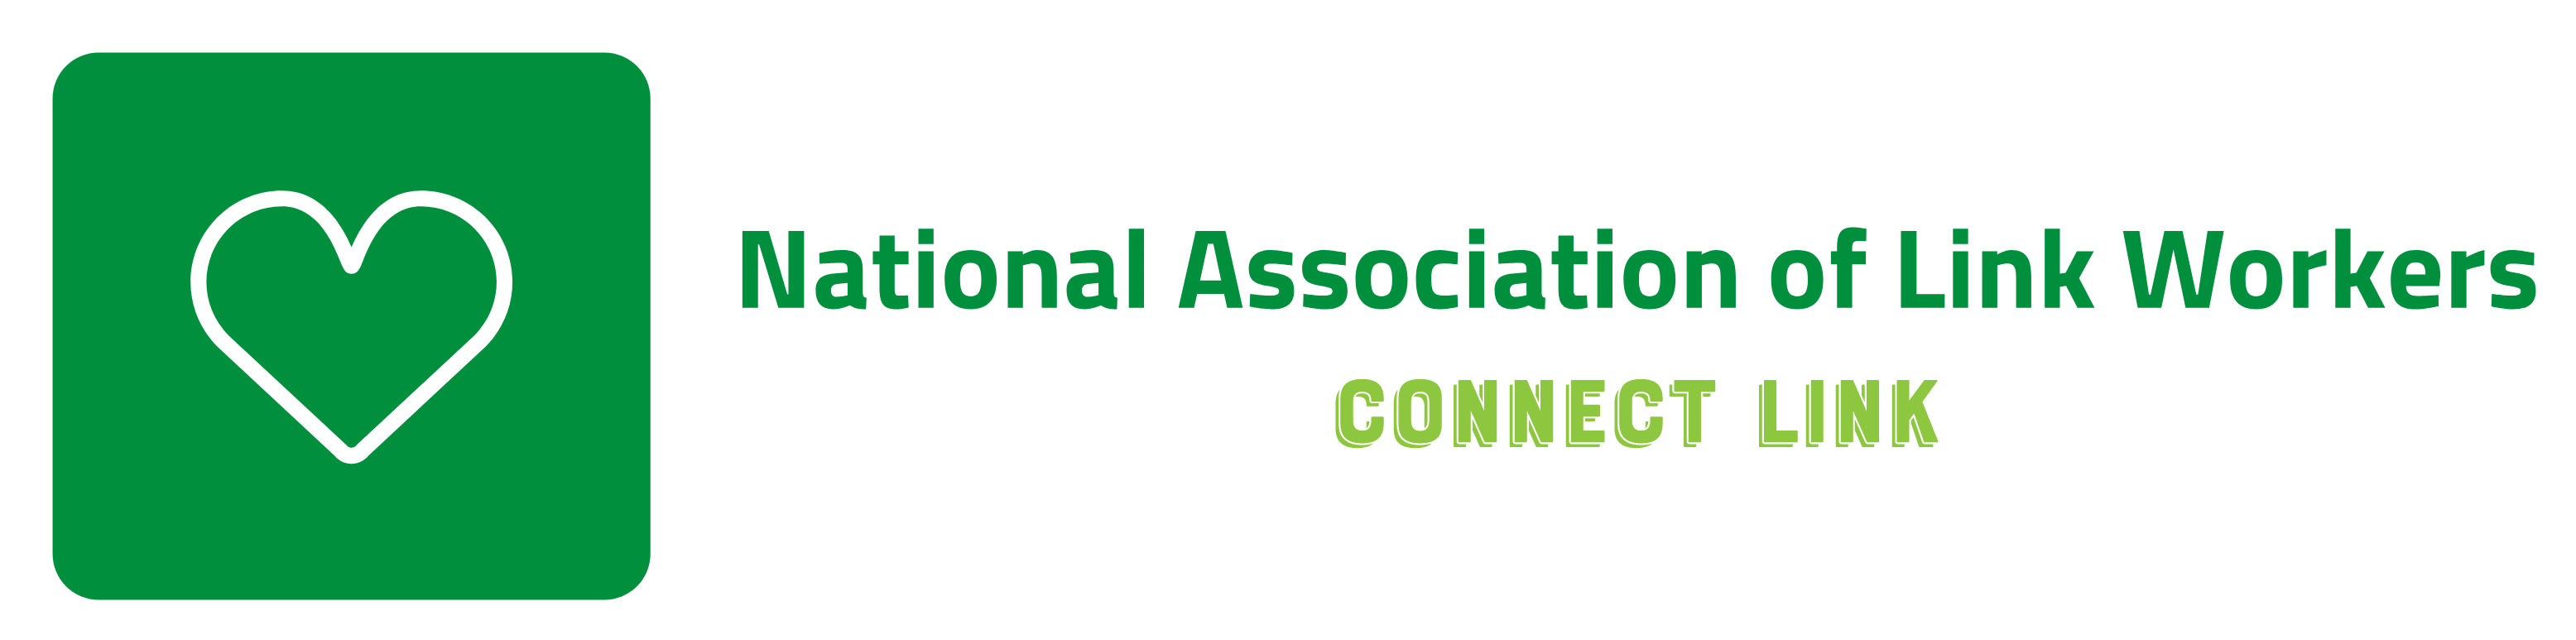 National Association of Link Workers